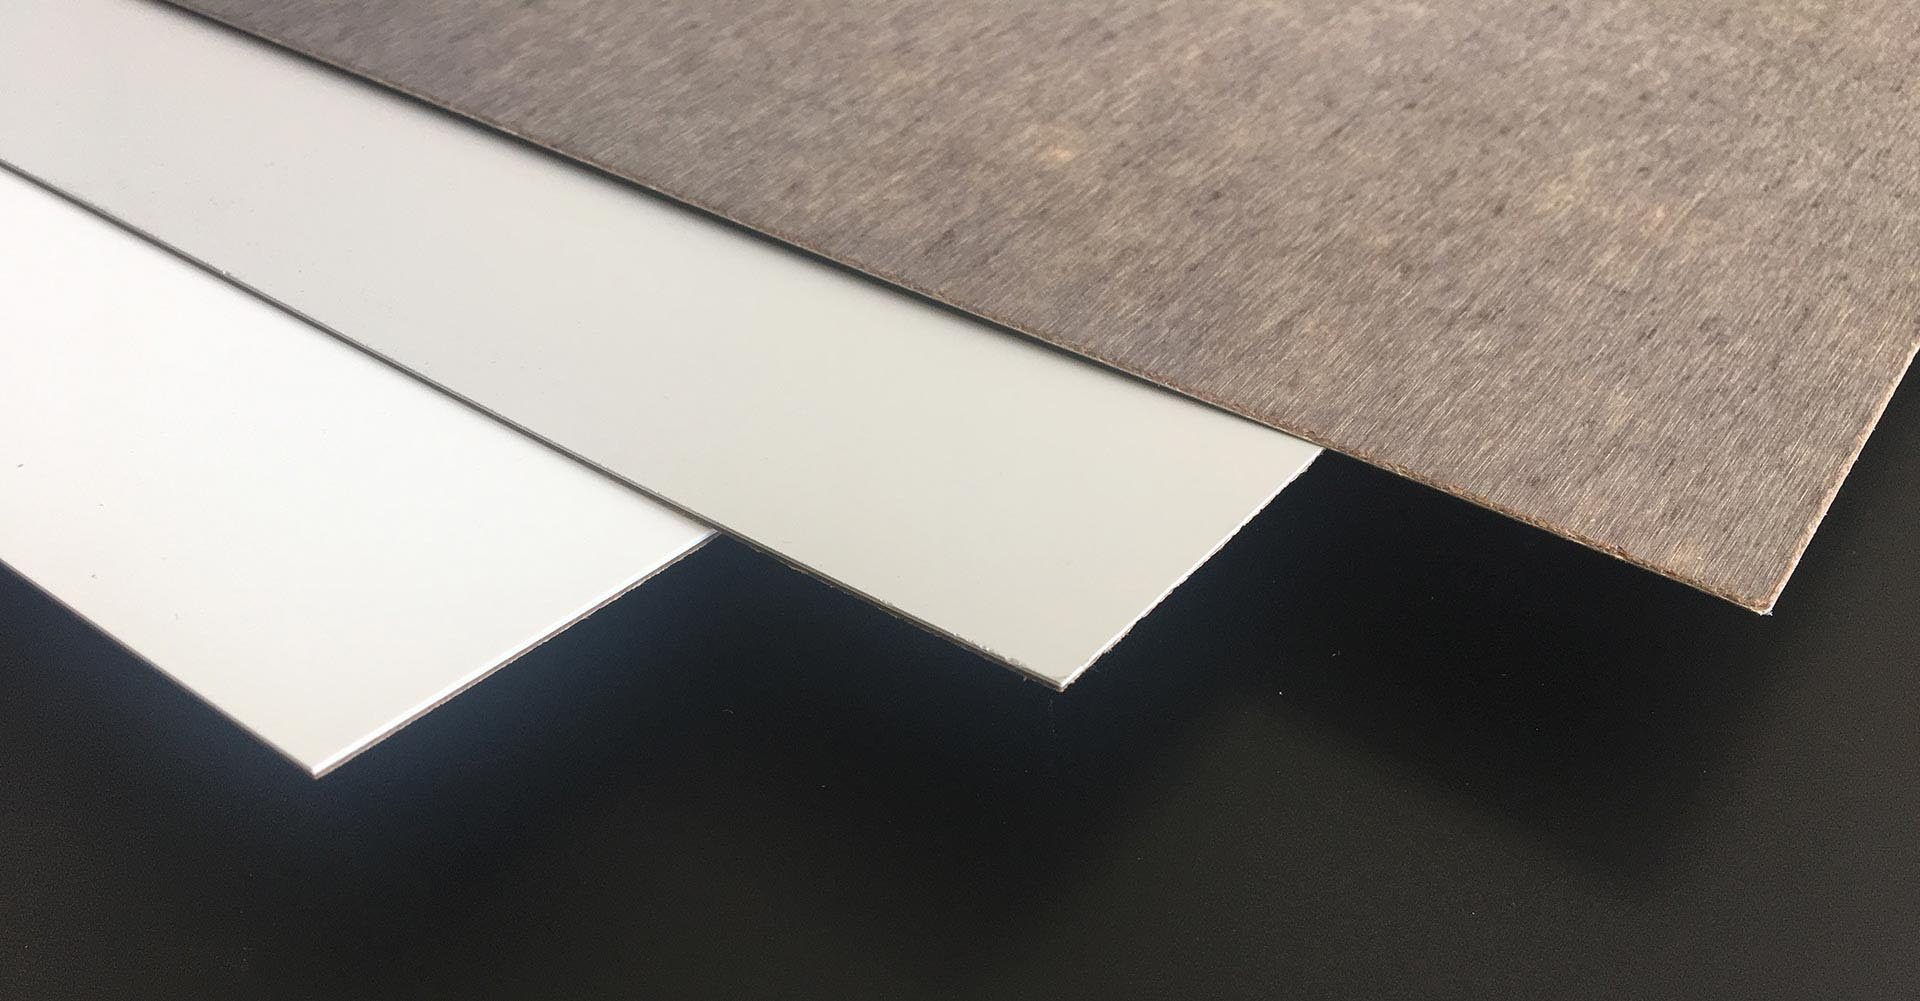 Overlay furniture panels